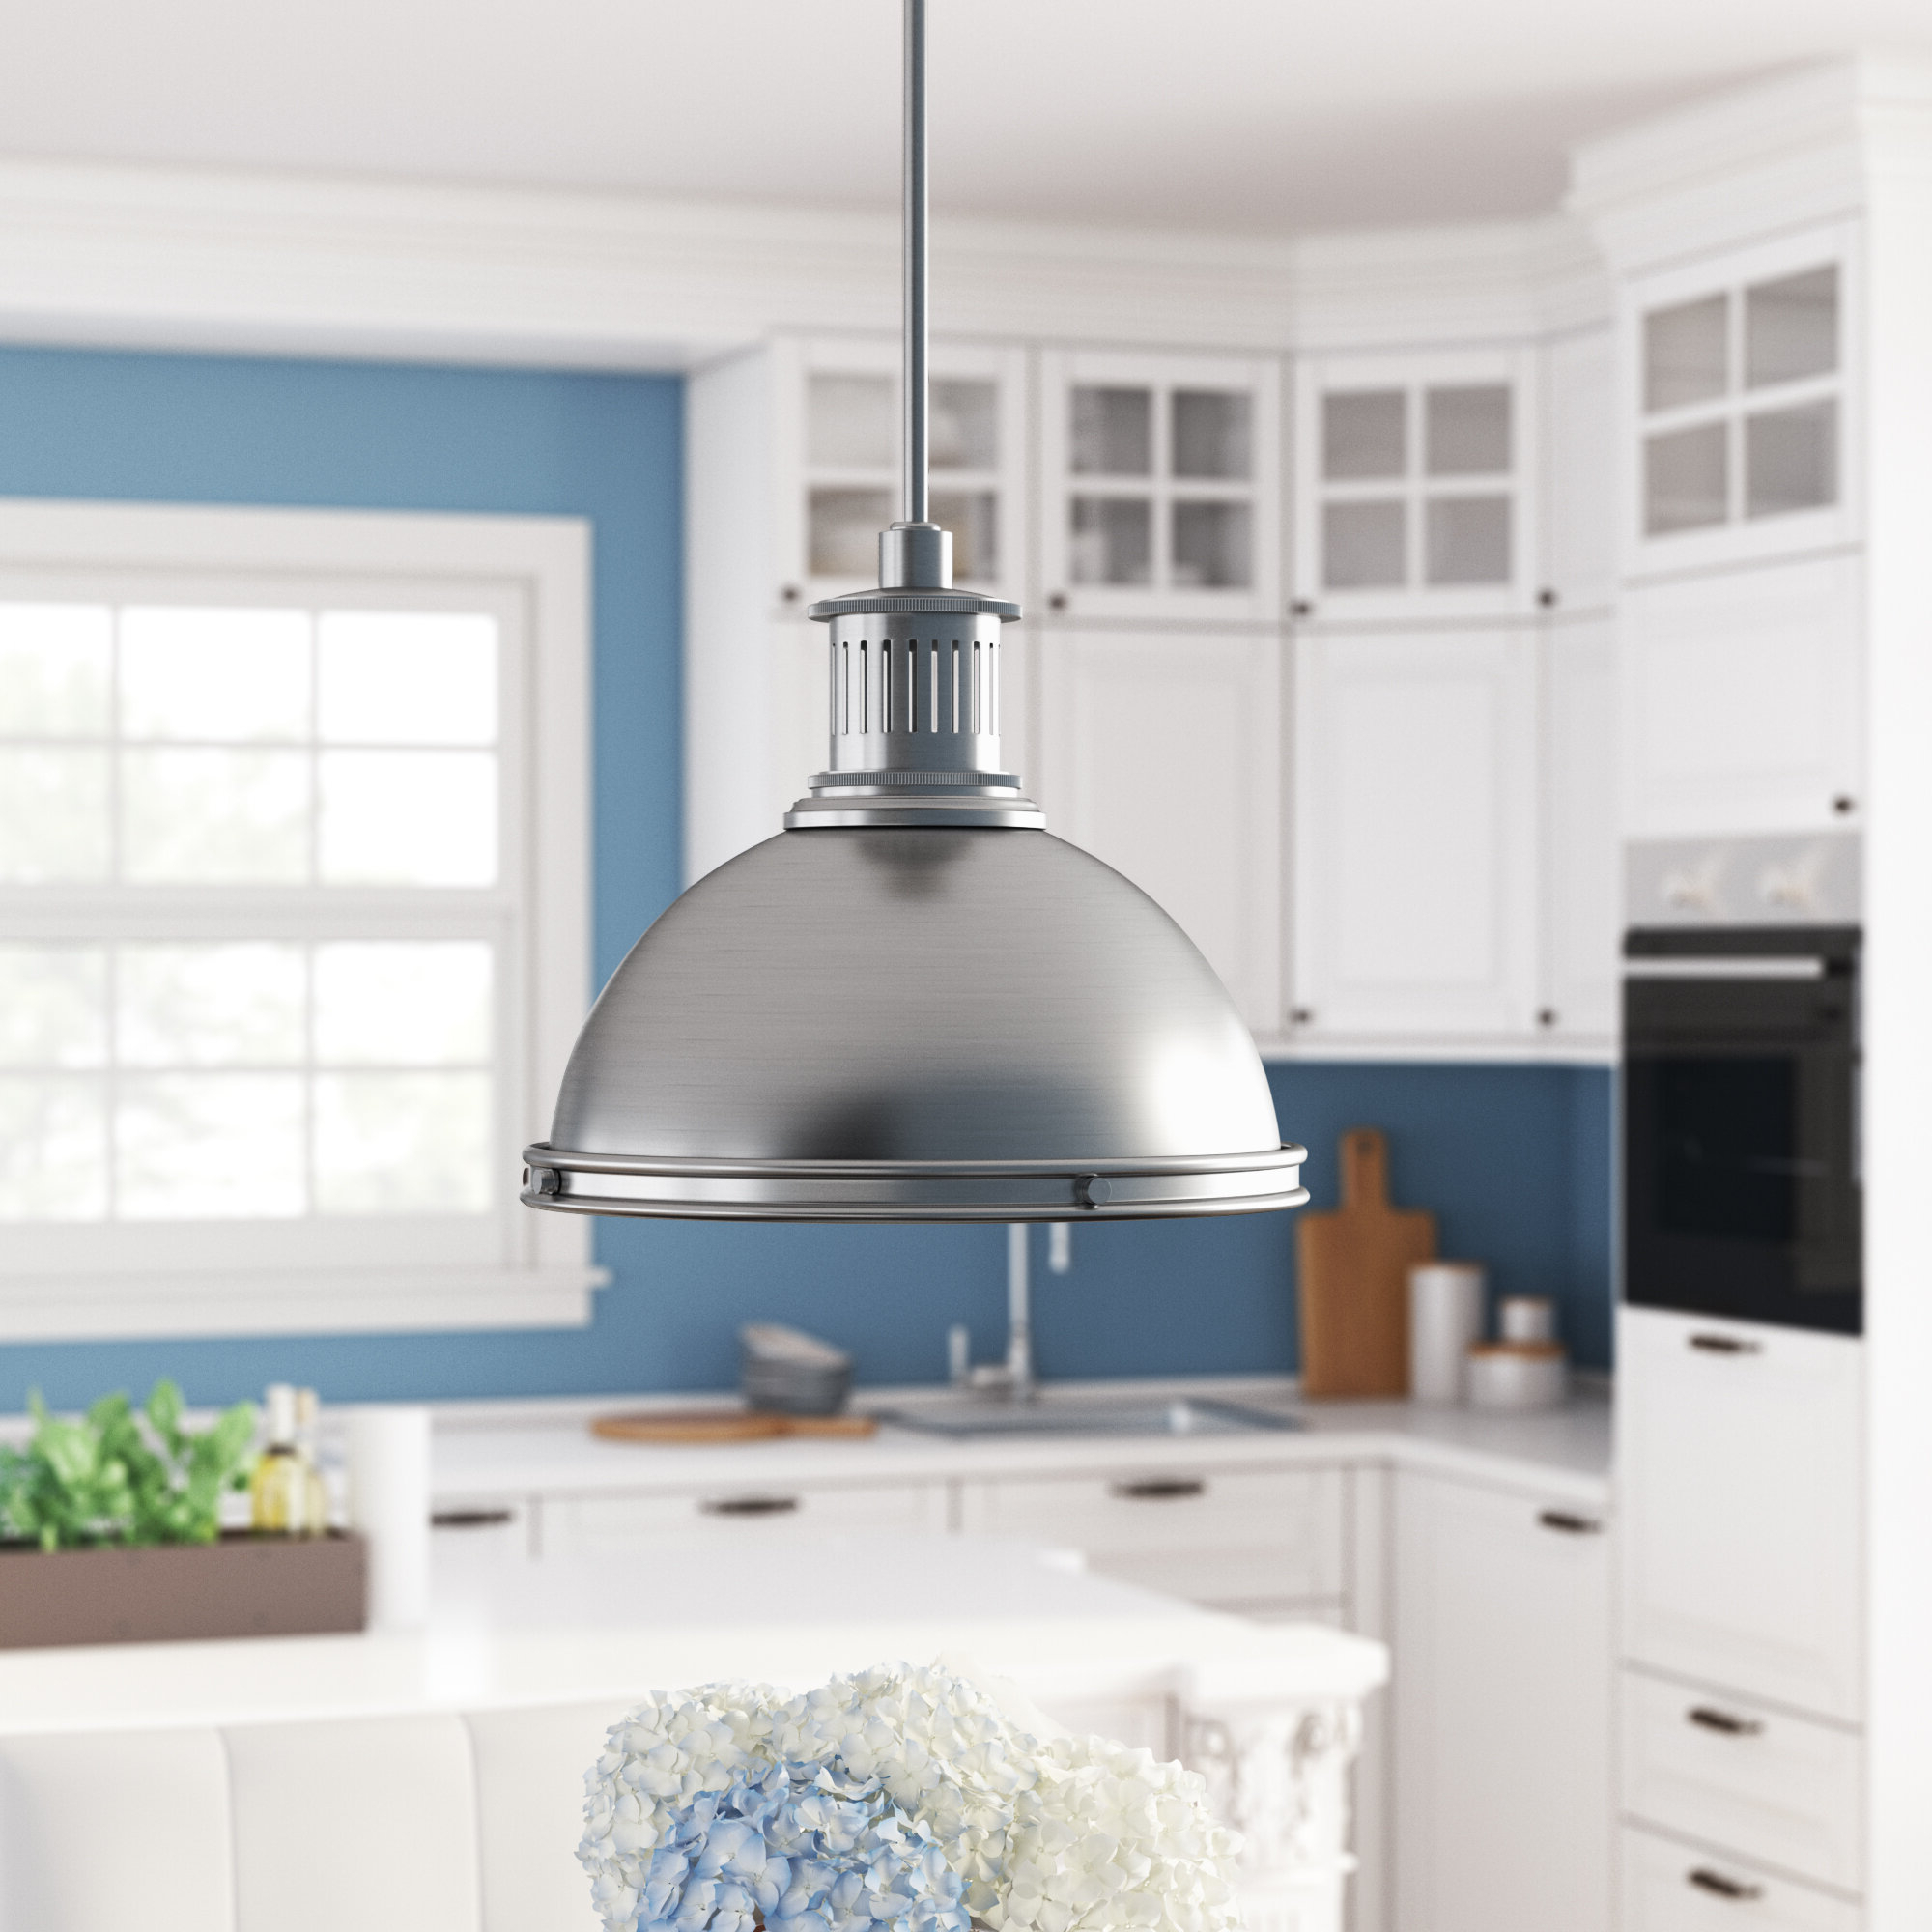 Amara 2 Light Dome Pendants Within Most Popular Ninette 1 Light Dome Pendant (View 13 of 25)